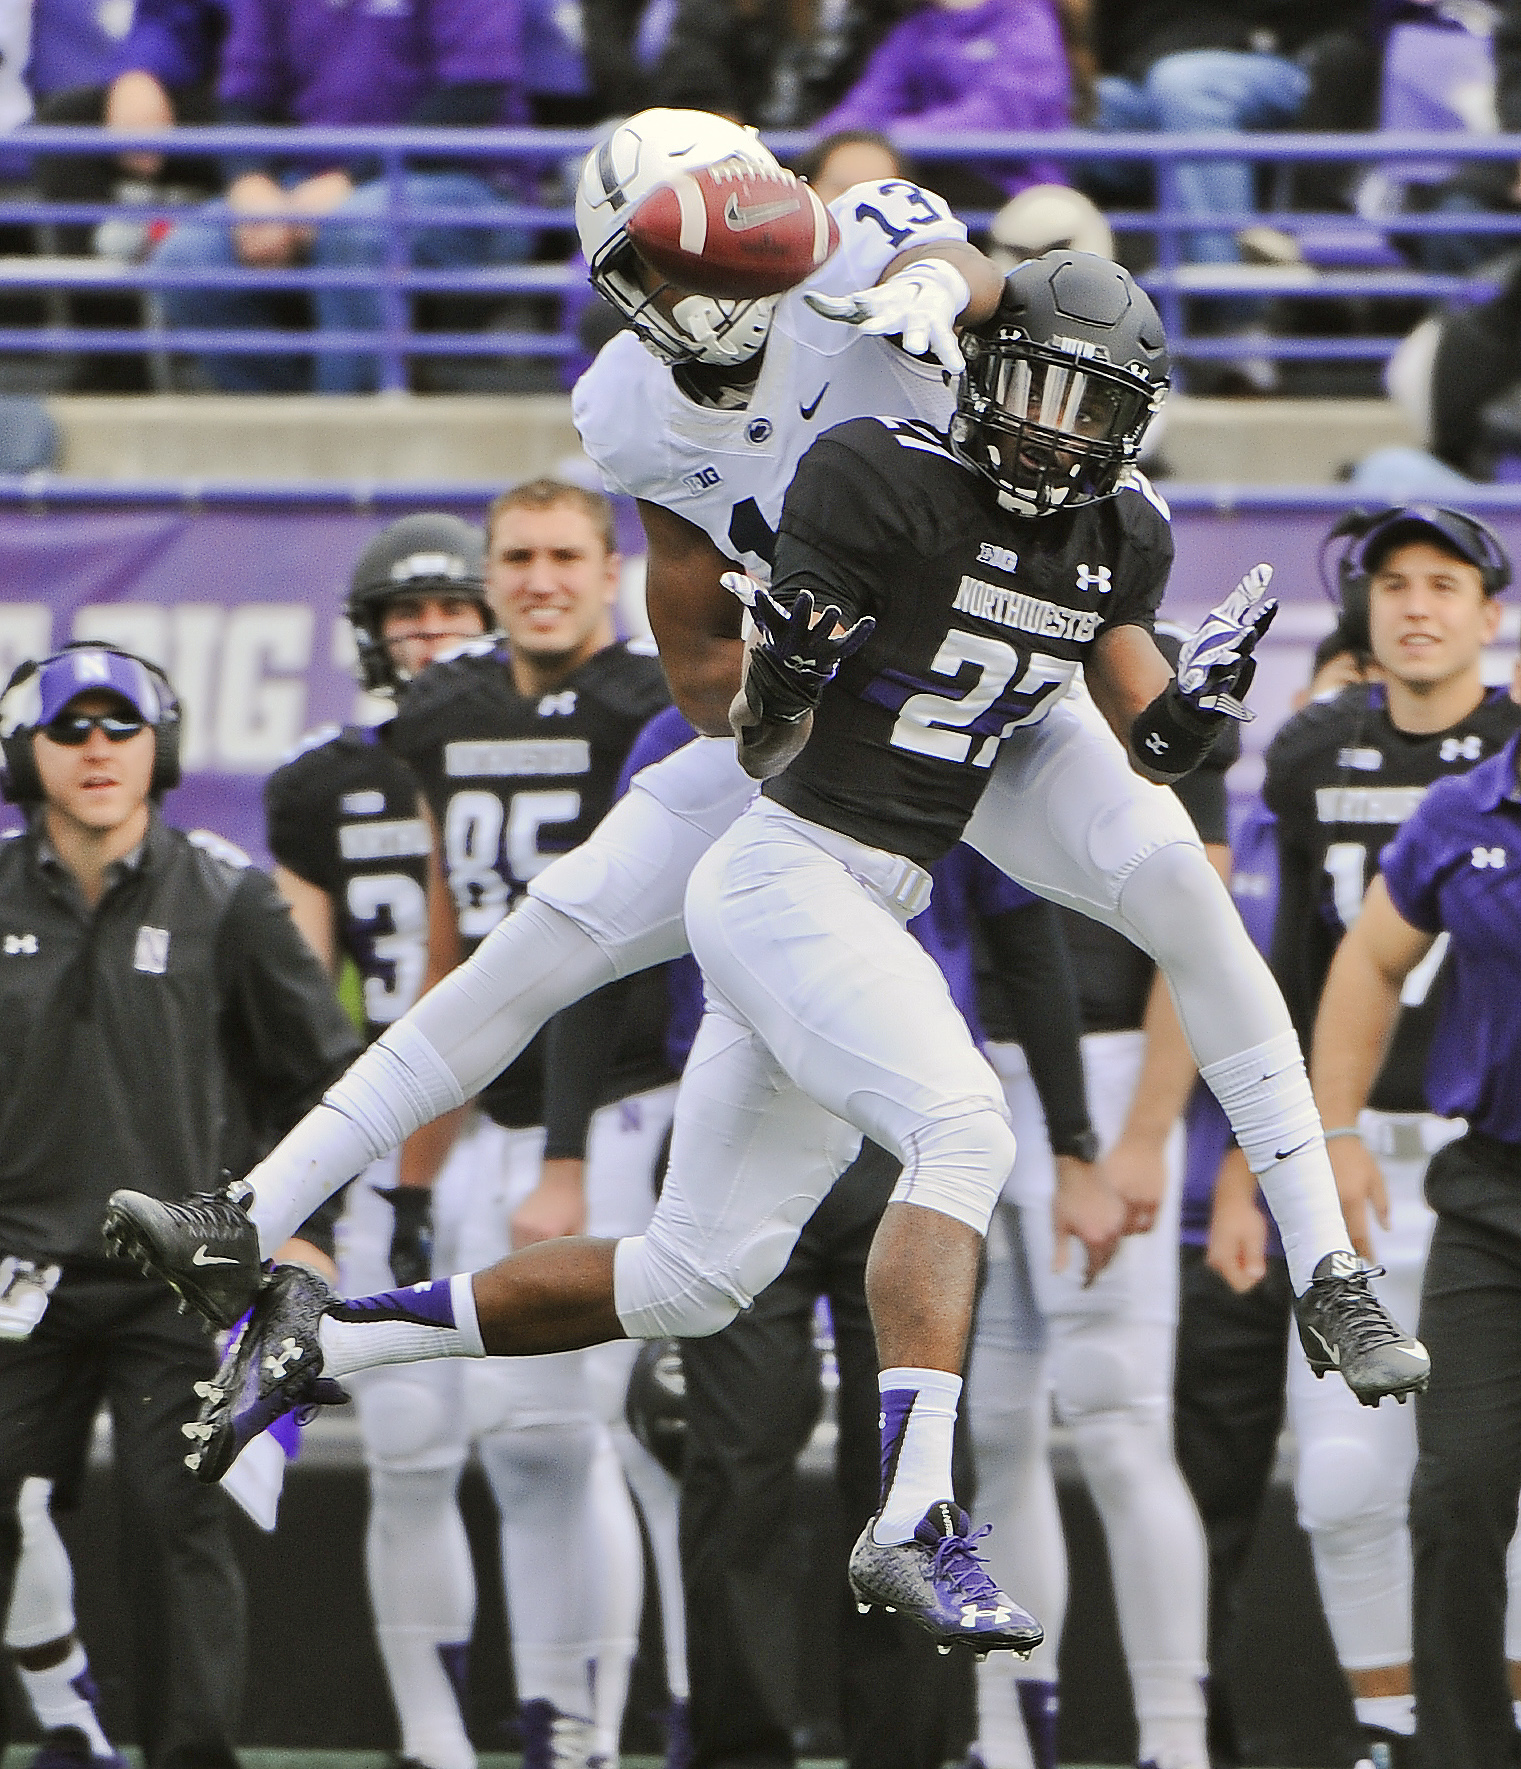 Northwestern cornerback Matthew Harris (27) breaks up a pass intended for Penn State wide receiver Saeed Blacknall (13) during the first quarter of an NCAA college football game in Evanston, Ill.,  Saturday, Nov. 7, 2015. (AP Photo/Matt Marton)